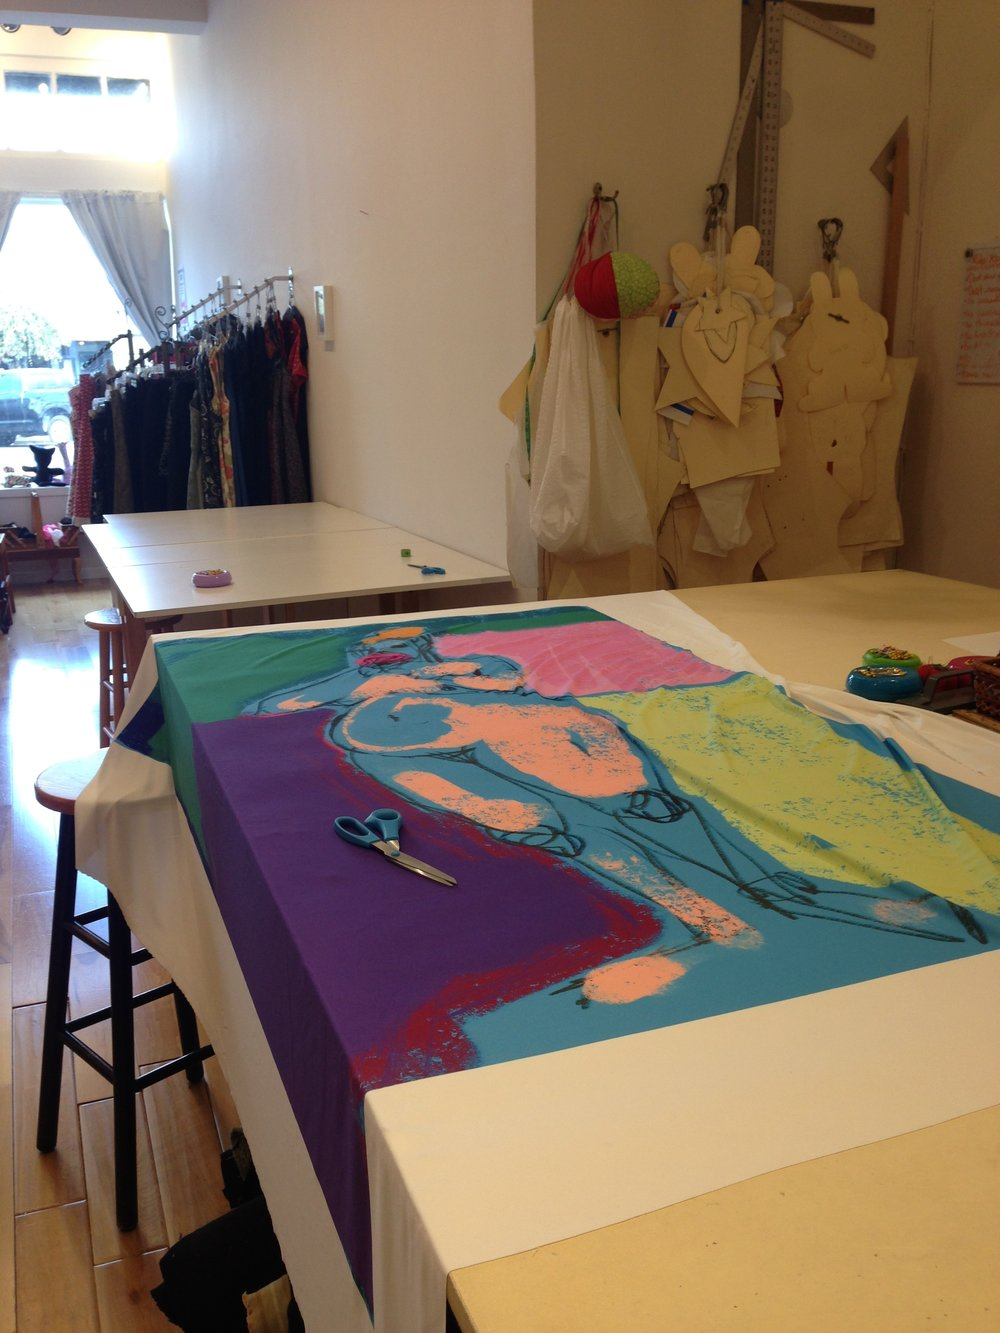 Getting ready 2: Cutting, sewing, and stuffing. The process of making my soft sculpture at SEW.